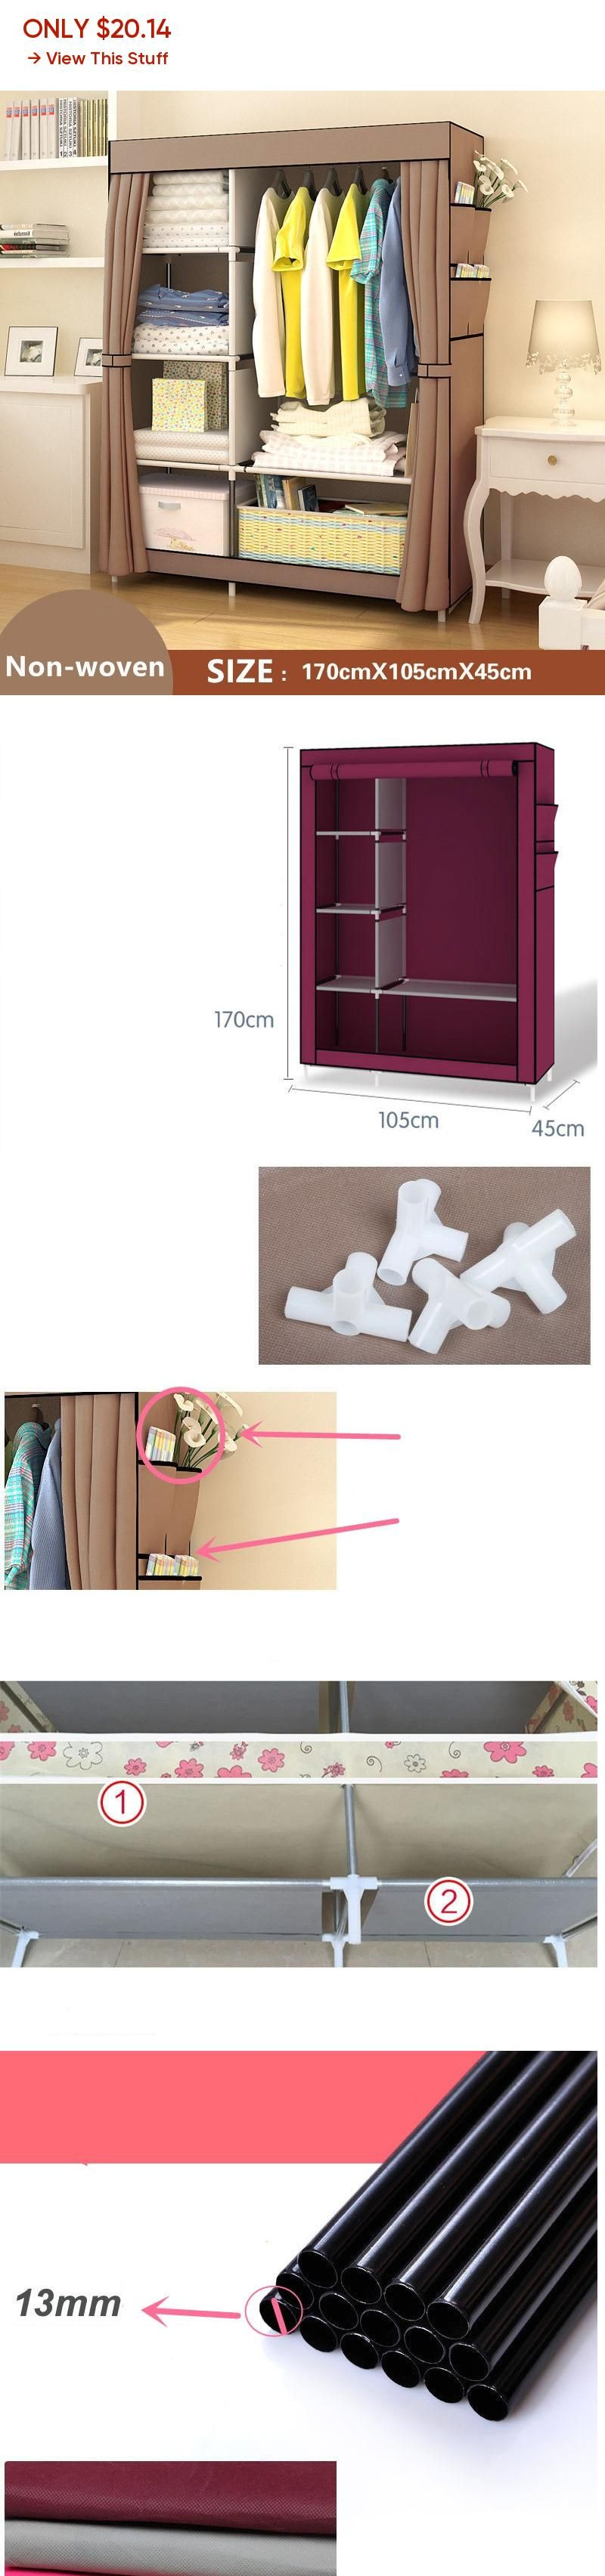 Non Woven Wardrobe Closet Large And Medium Sized Cabinets Simple Folding Reinforcement Receive Stowed Clothes Wardrobe Closet Cheap Wardrobe Closet Large Wardrobe Closet